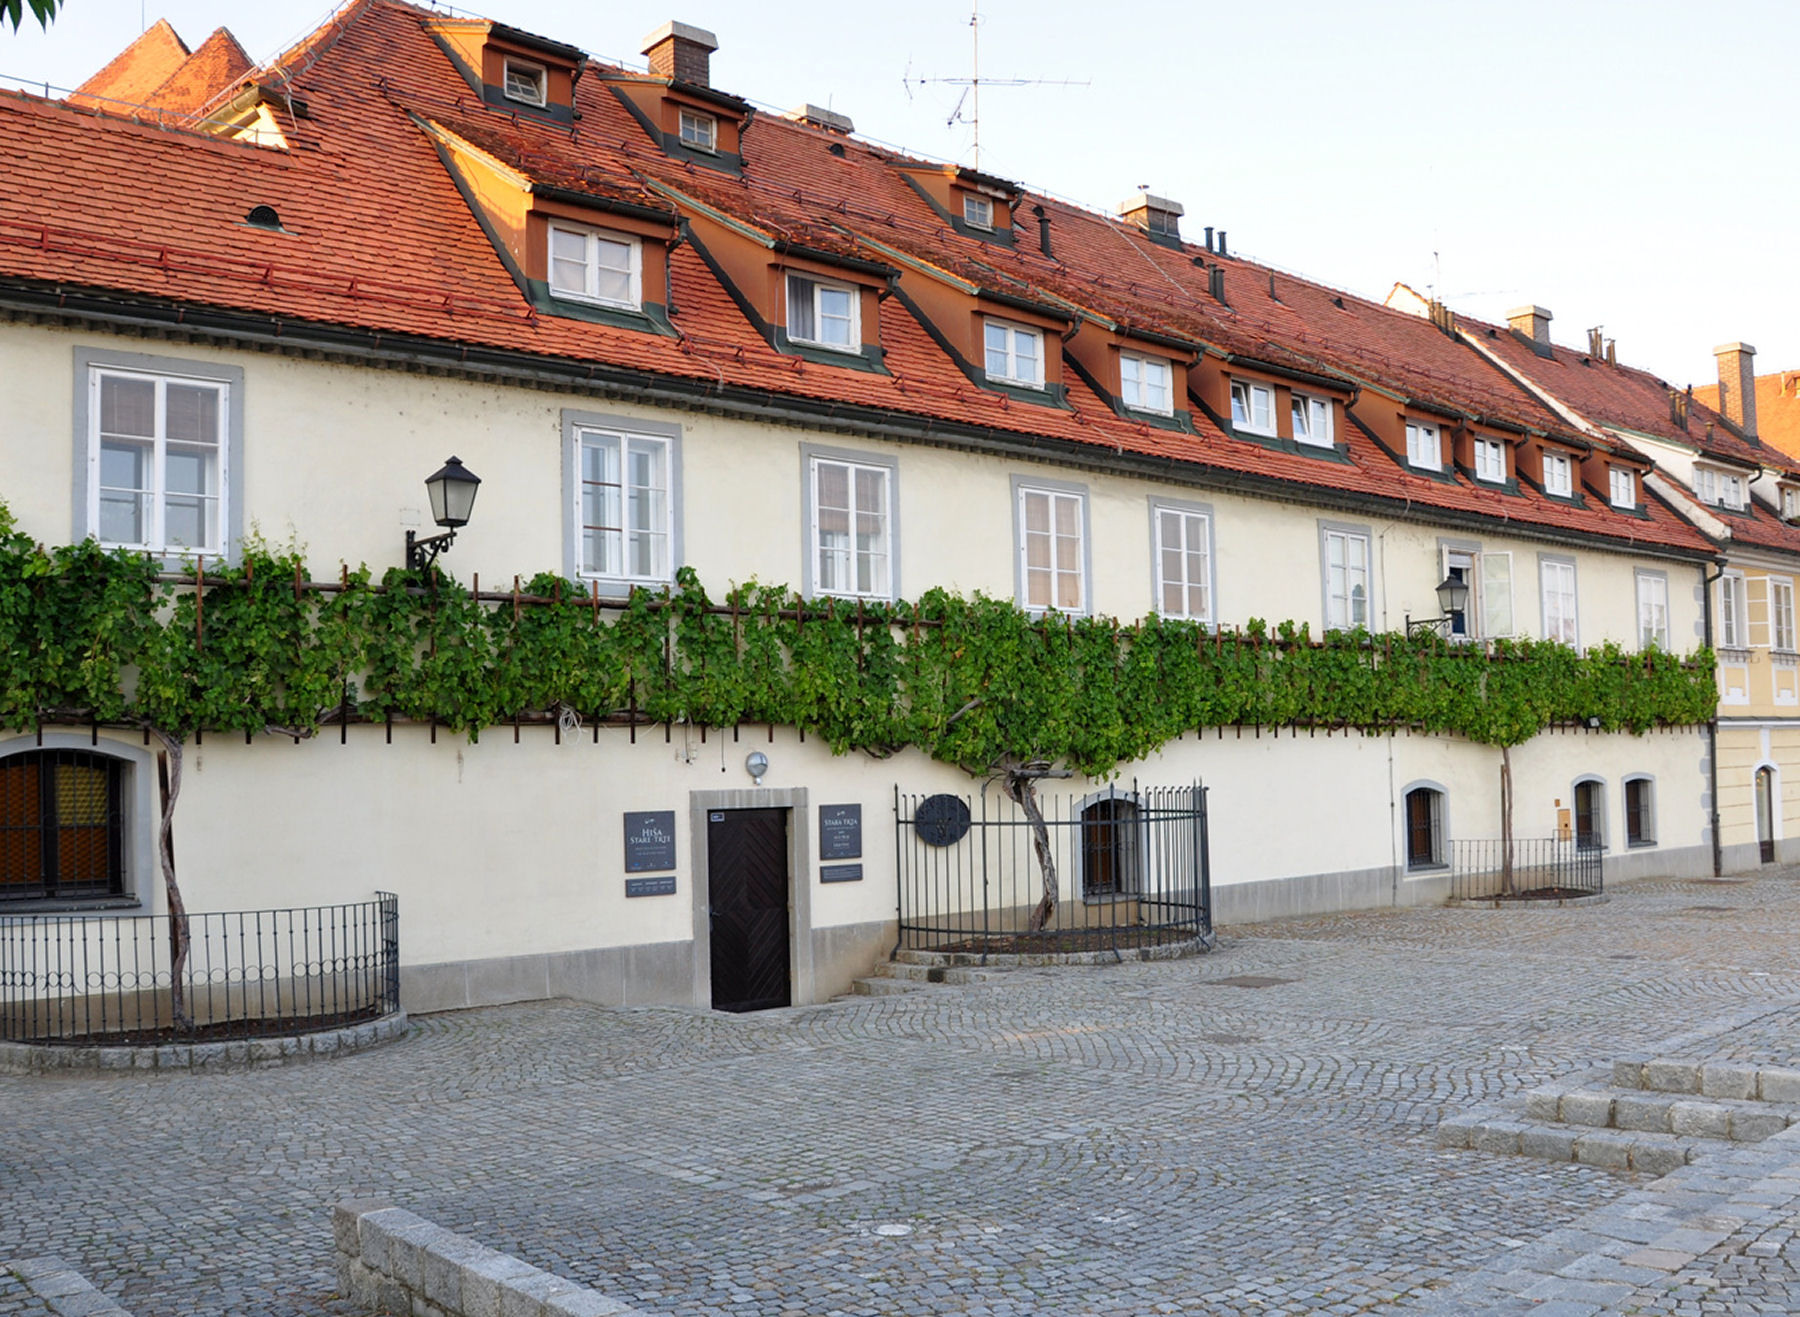 The Oldest Vine in the World growing outside the Old Vine House in Maribor, Slovenia